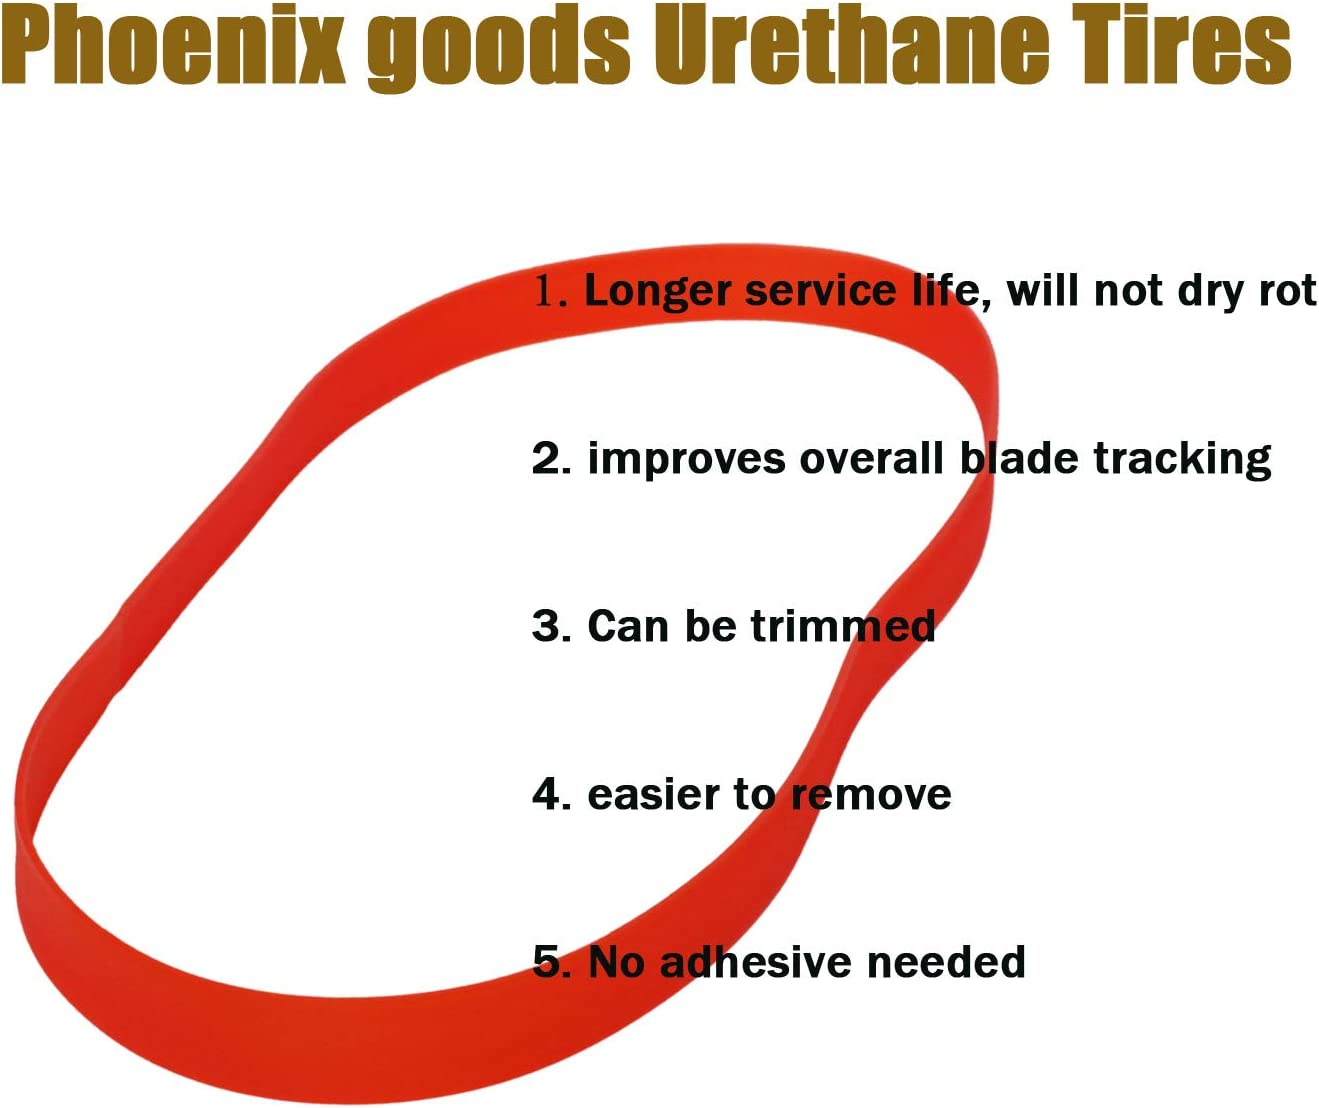 Urethane Bandsaw Tires 10 inch x 7//8 inch x .095 inch 2 Pack for most 10 Band Saws No Adhesive Needed Phoenix goods